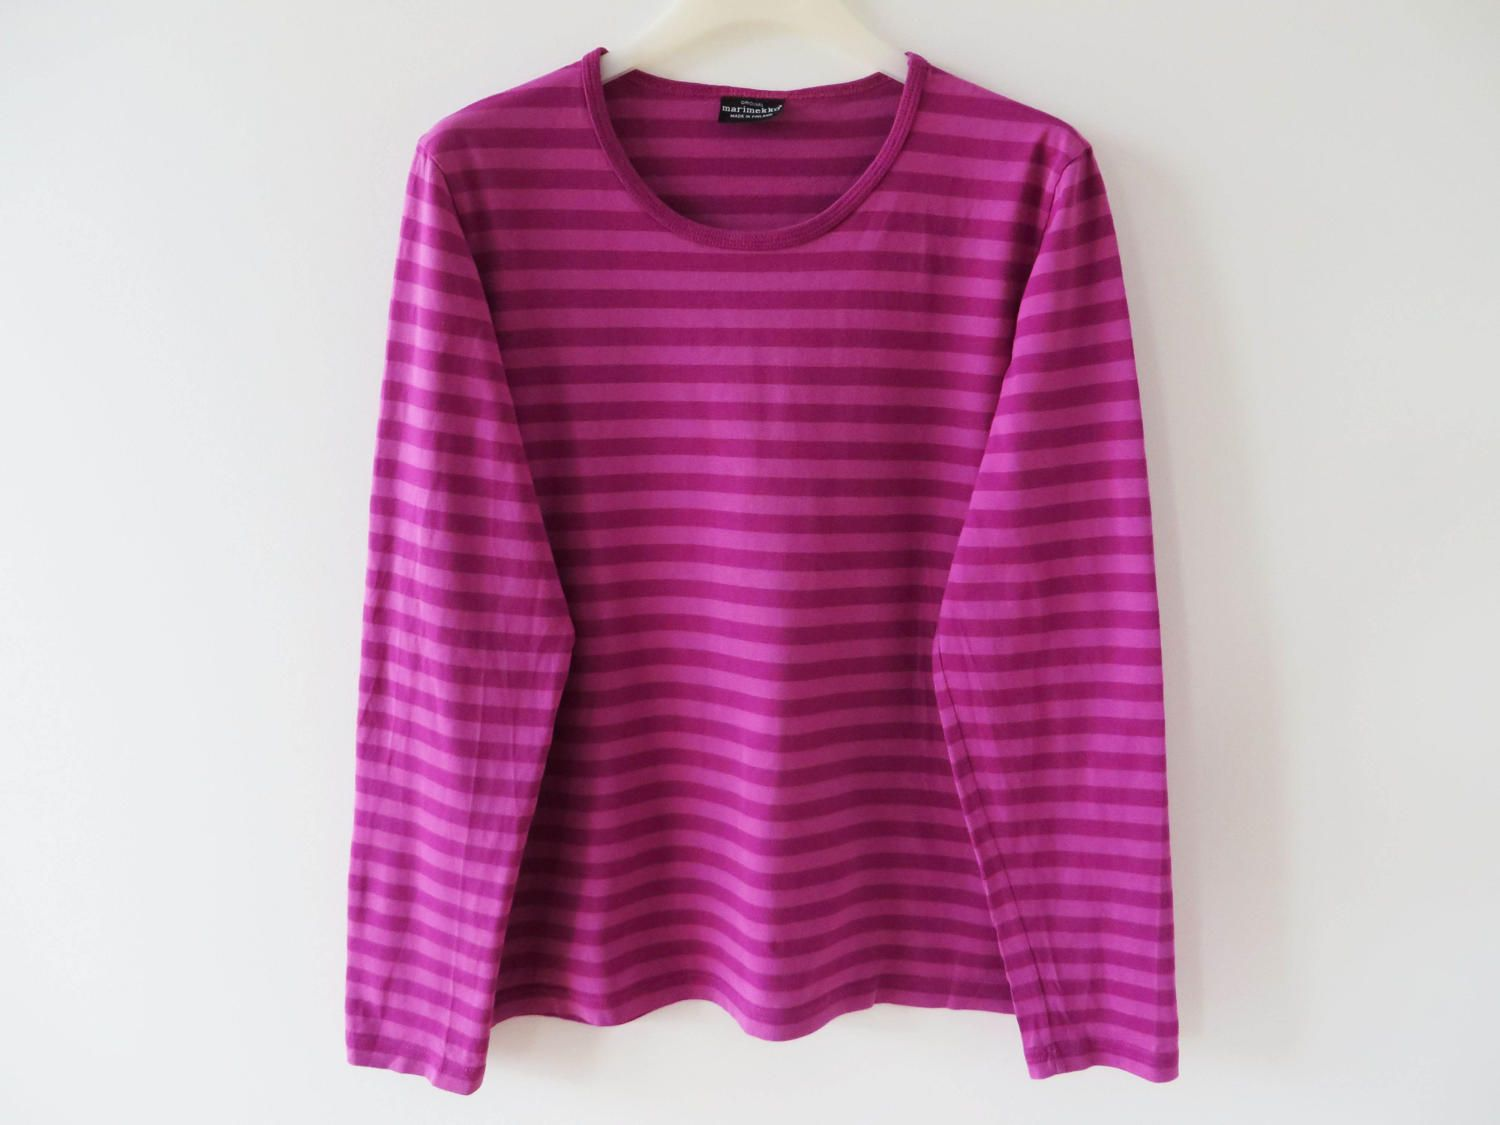 MARIMEKKO Shirt Pink Purple Striped Sailor Women Blouse Nautical ...